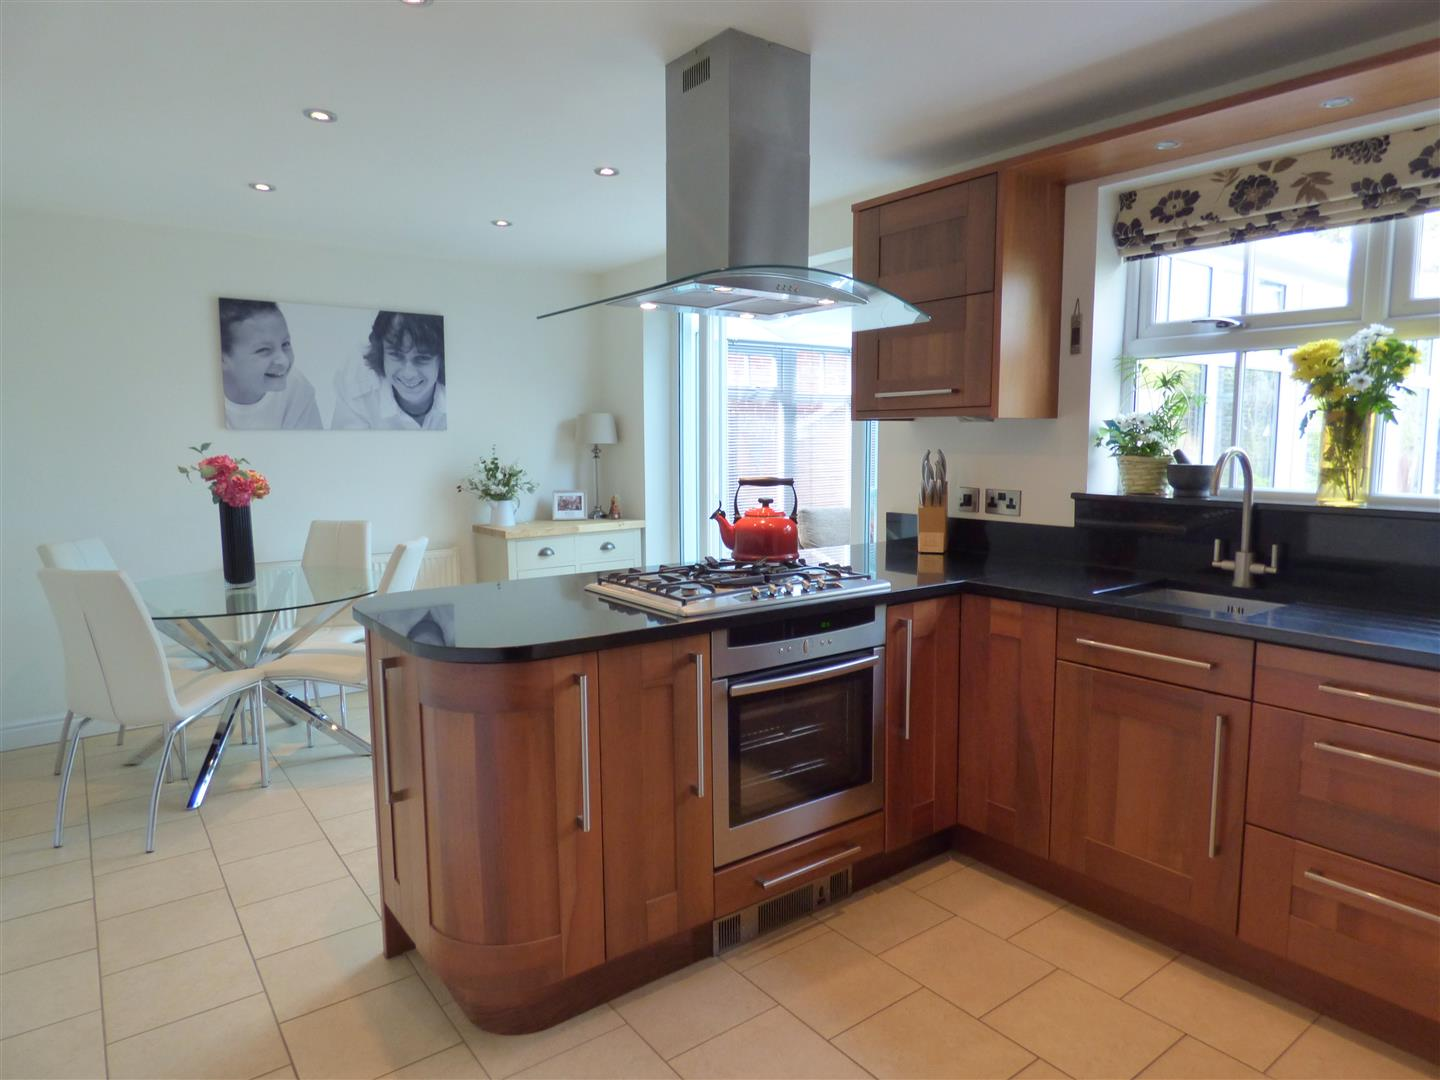 Double Glazed Kitchen Doors House Detached 30 Thyme Way Beverley East Yorkshire Hu17 8xh